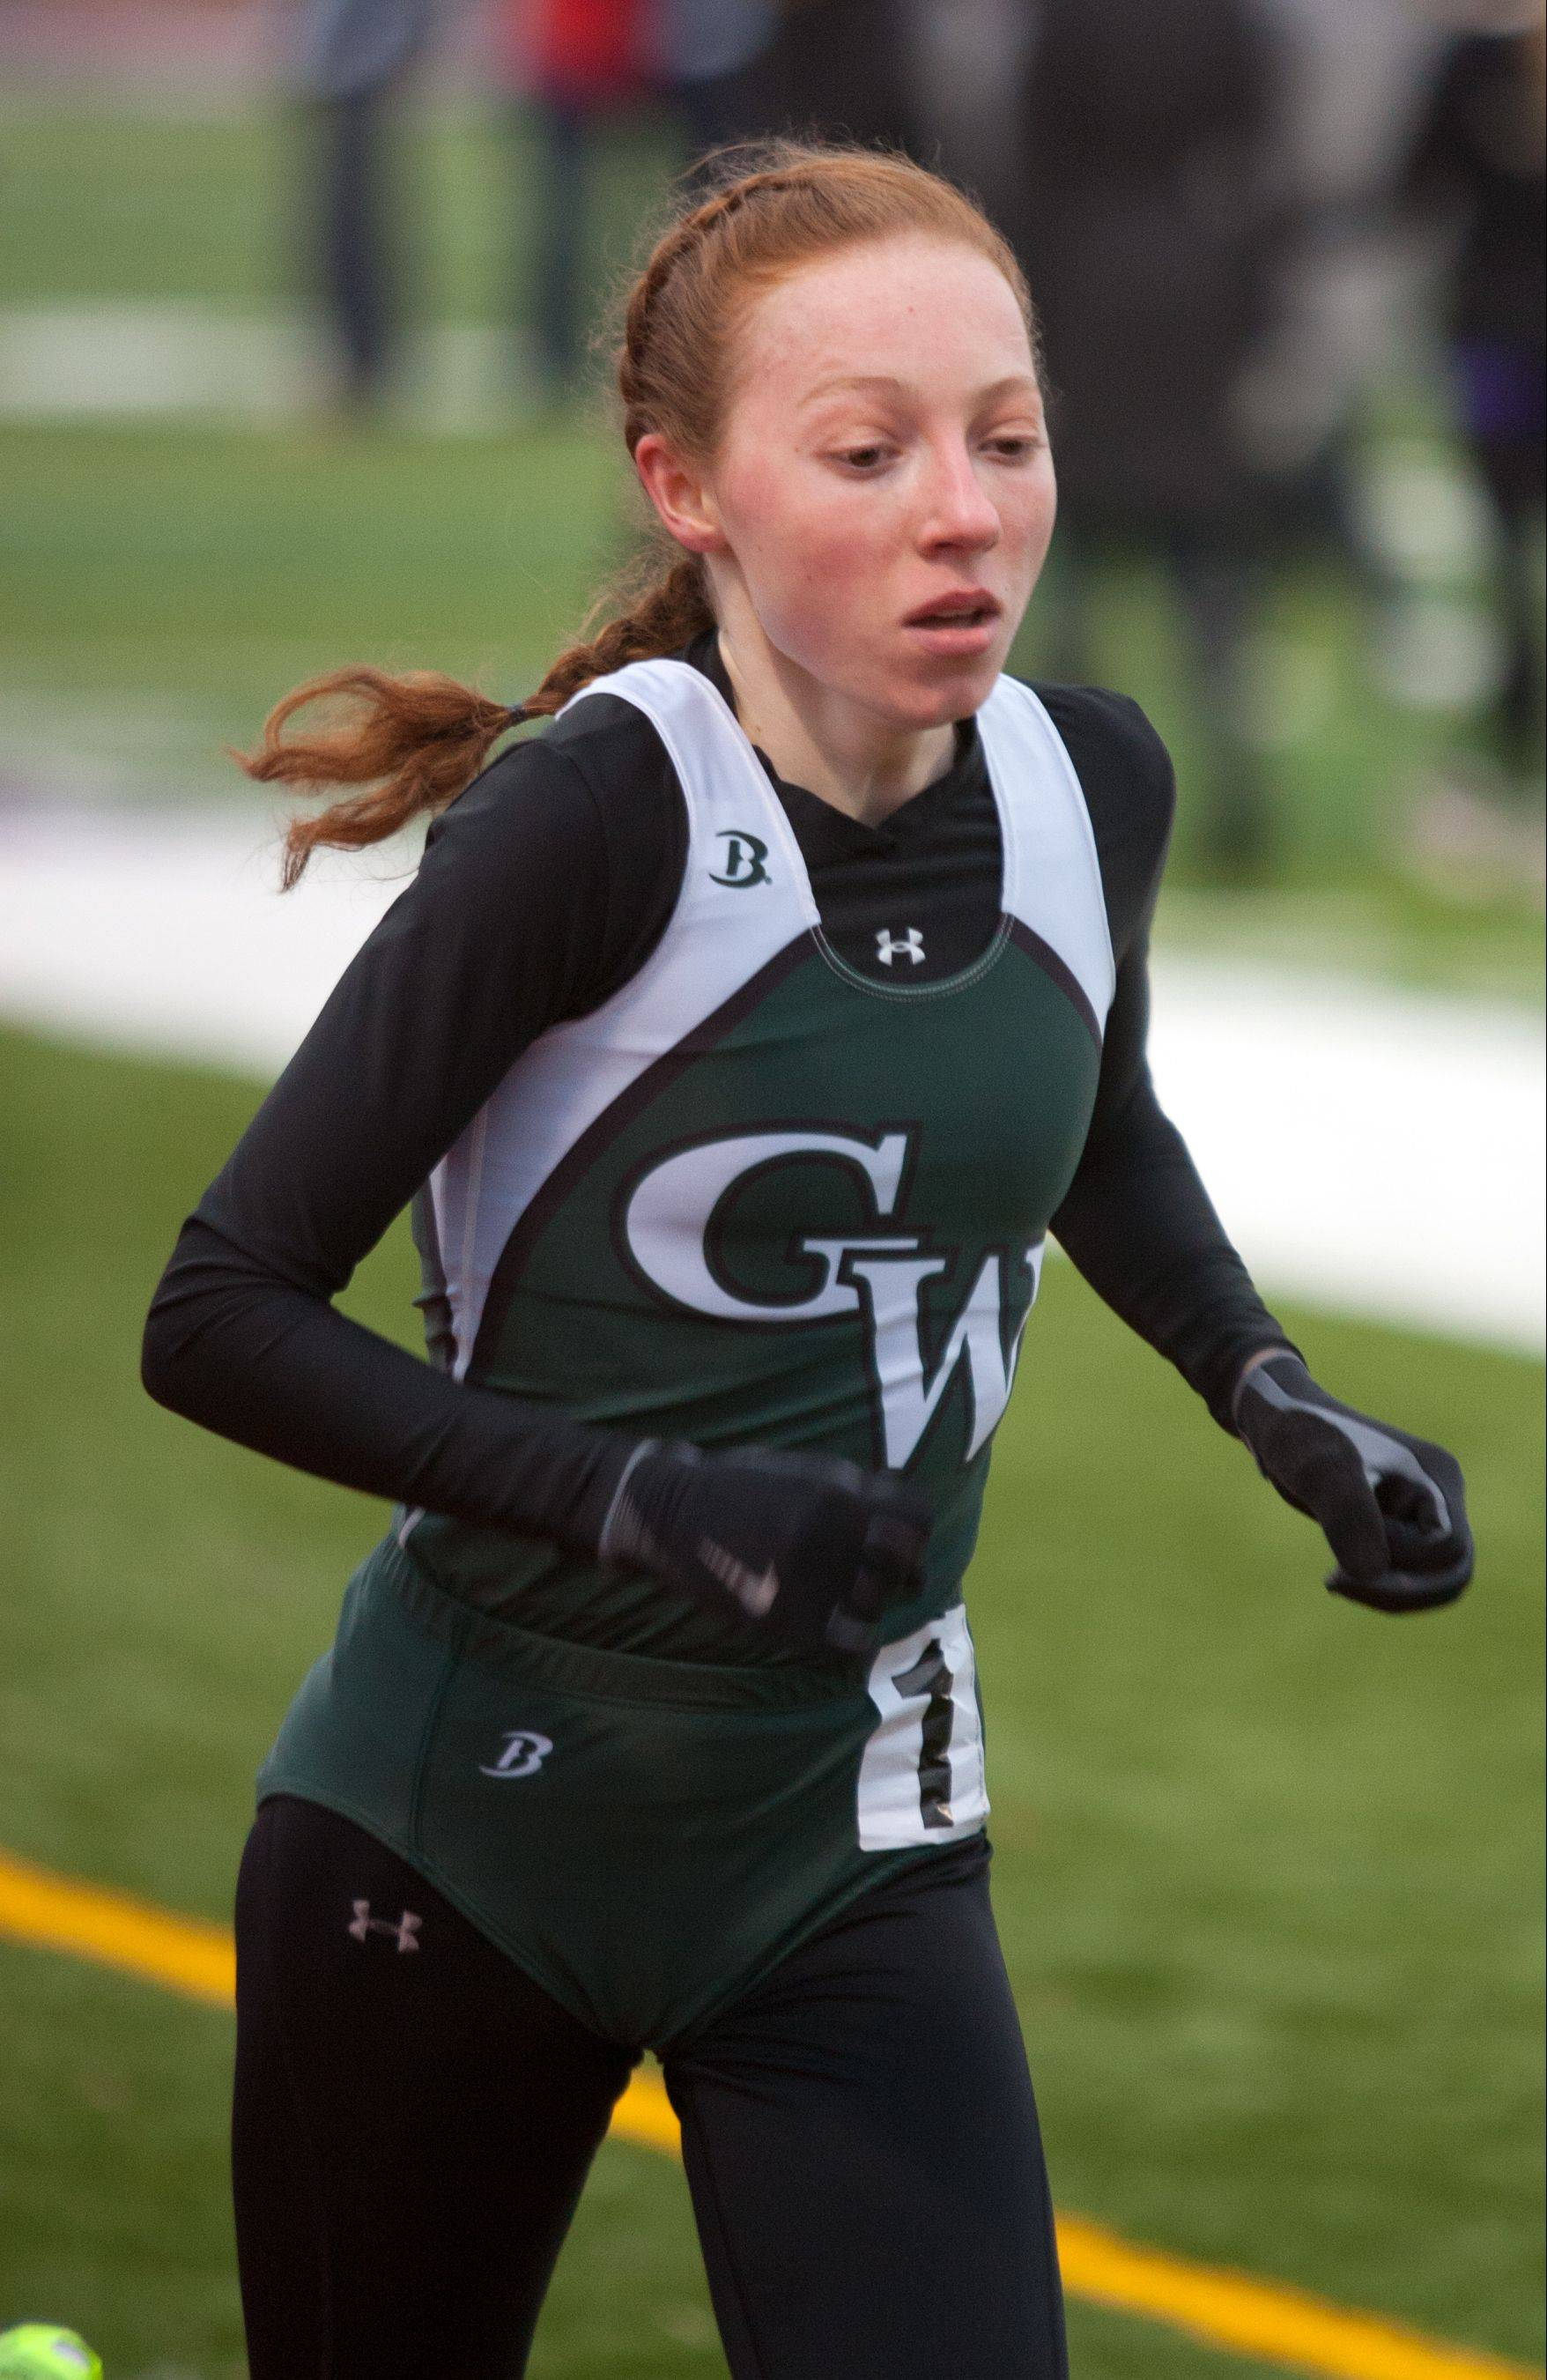 Glenbard West's Madeline Perez wins the 3,200-meter run, setting a personal best time of 10:27.3 at Downers North's invitational Friday.